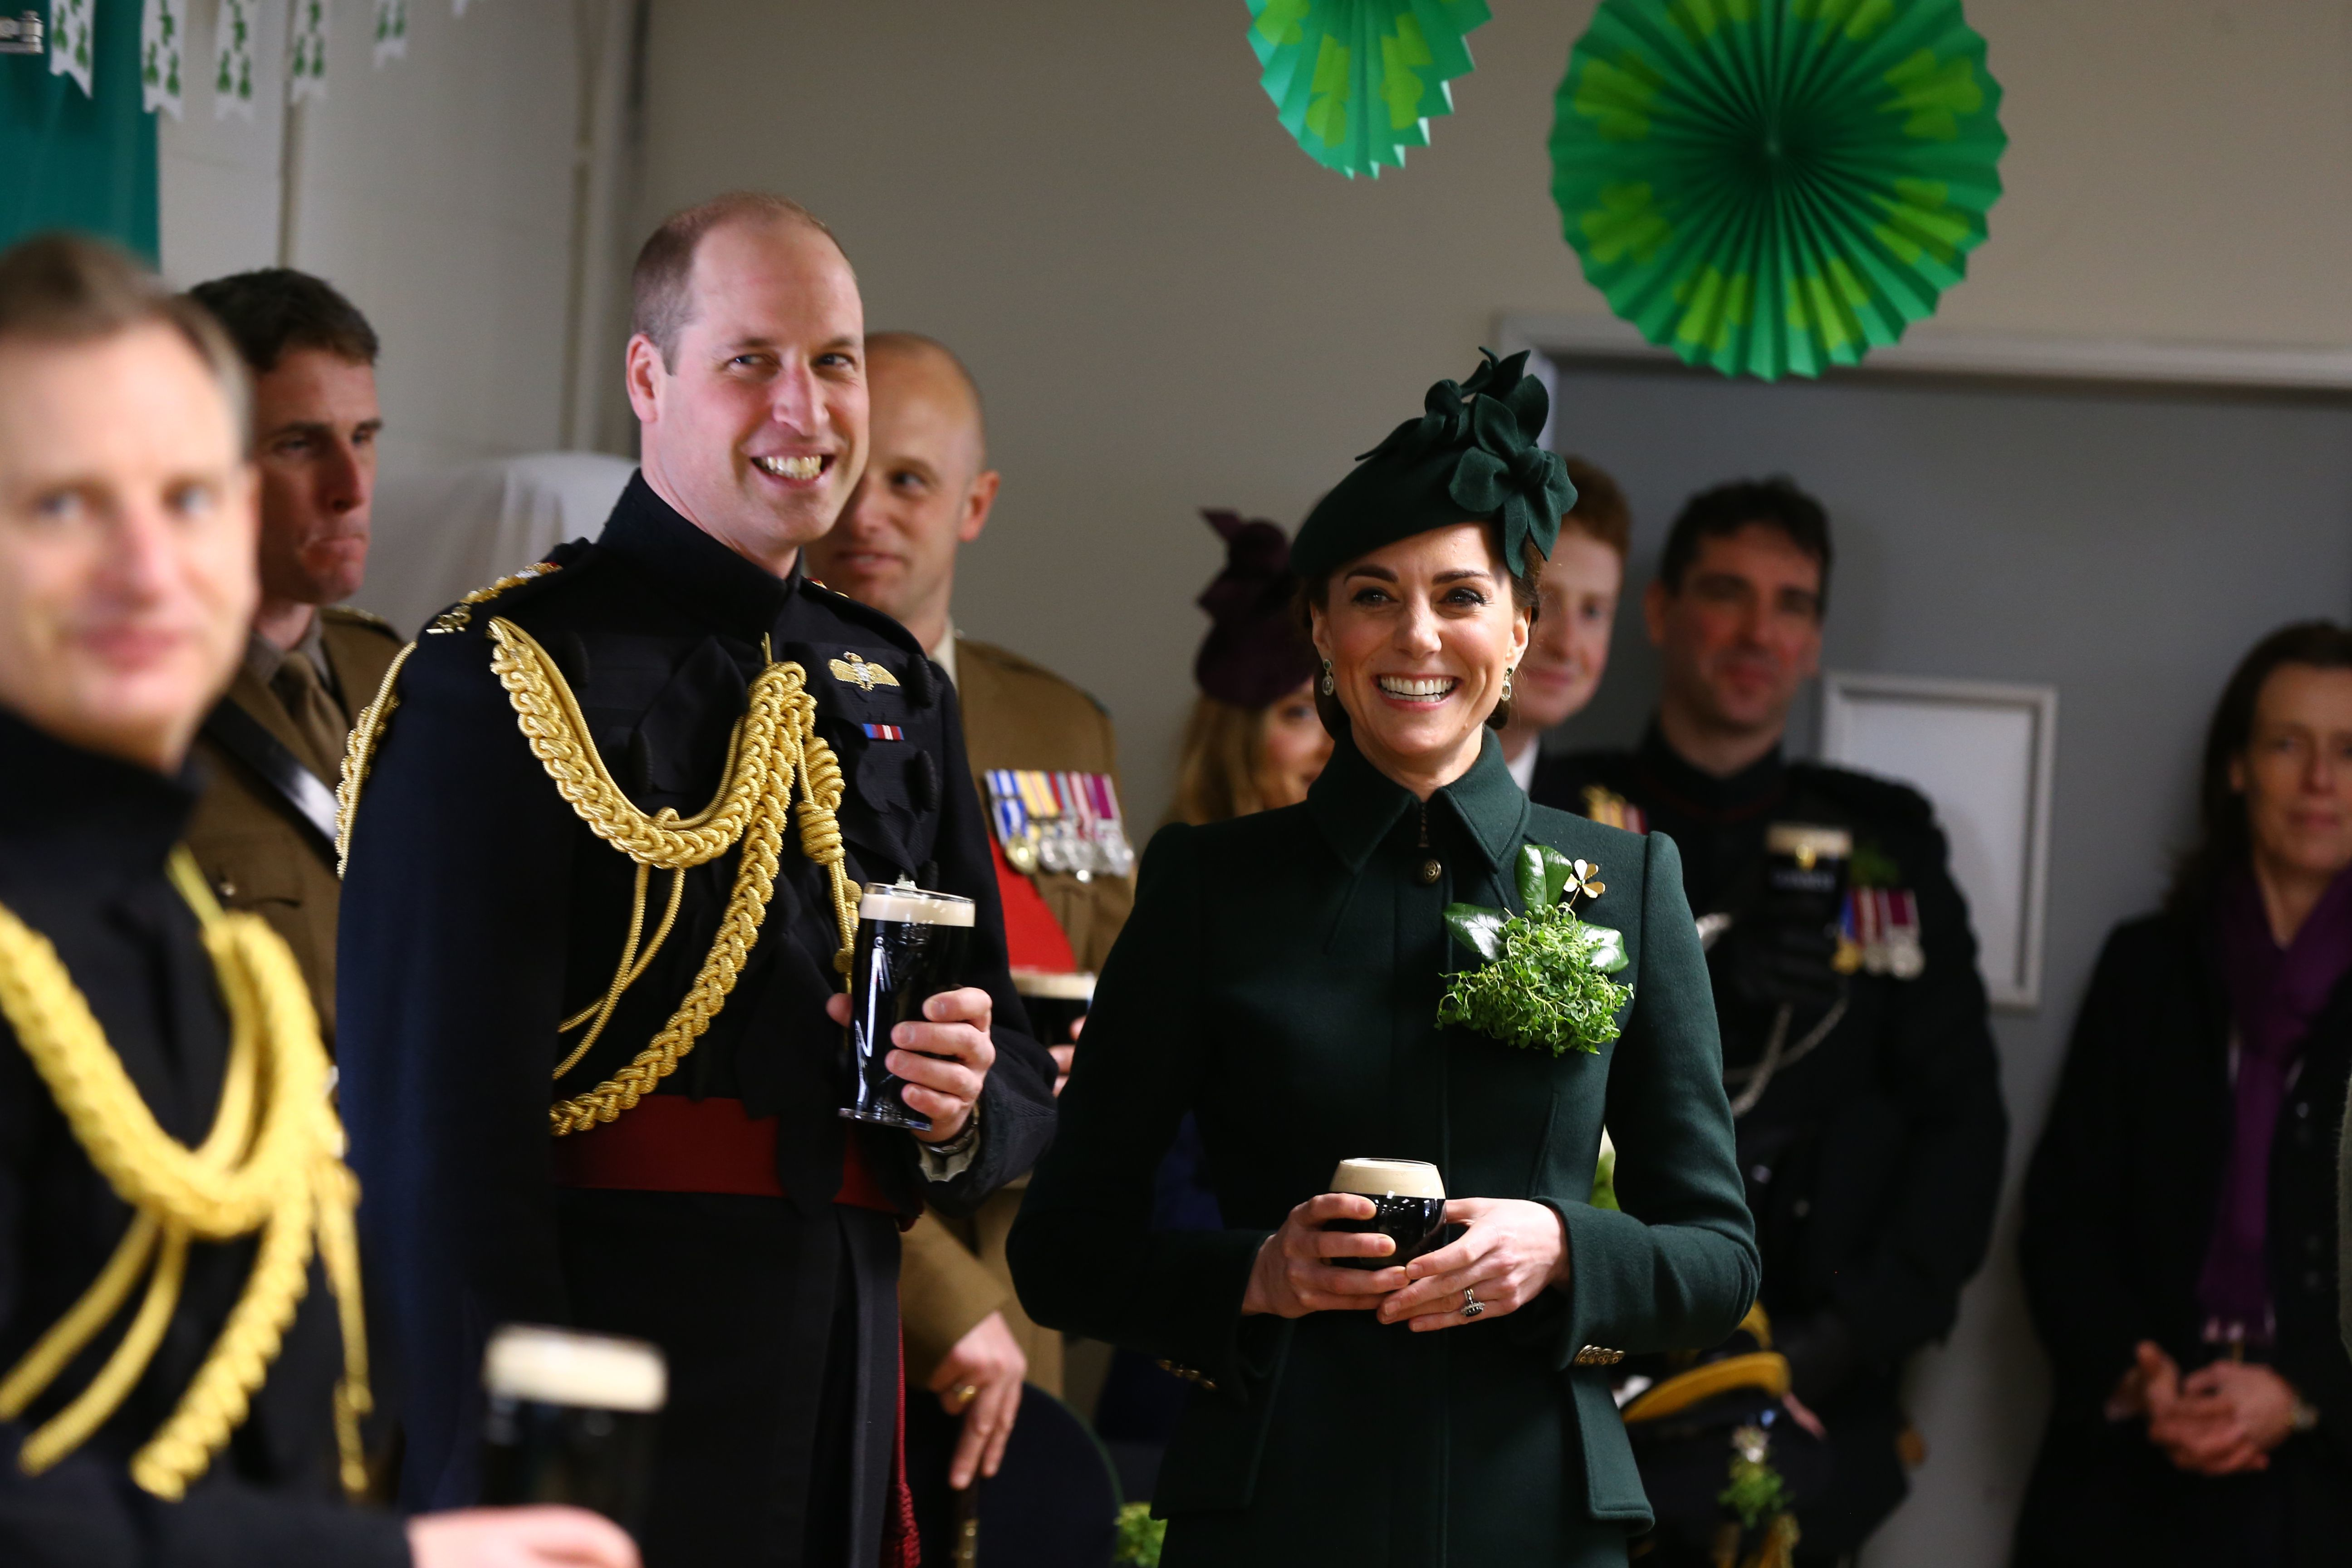 Prince William and Duchess Kate enjoy a pint of Guinness after attending the St Patrick's Day parade at Cavalry Barracks in London on March 17, 2019.